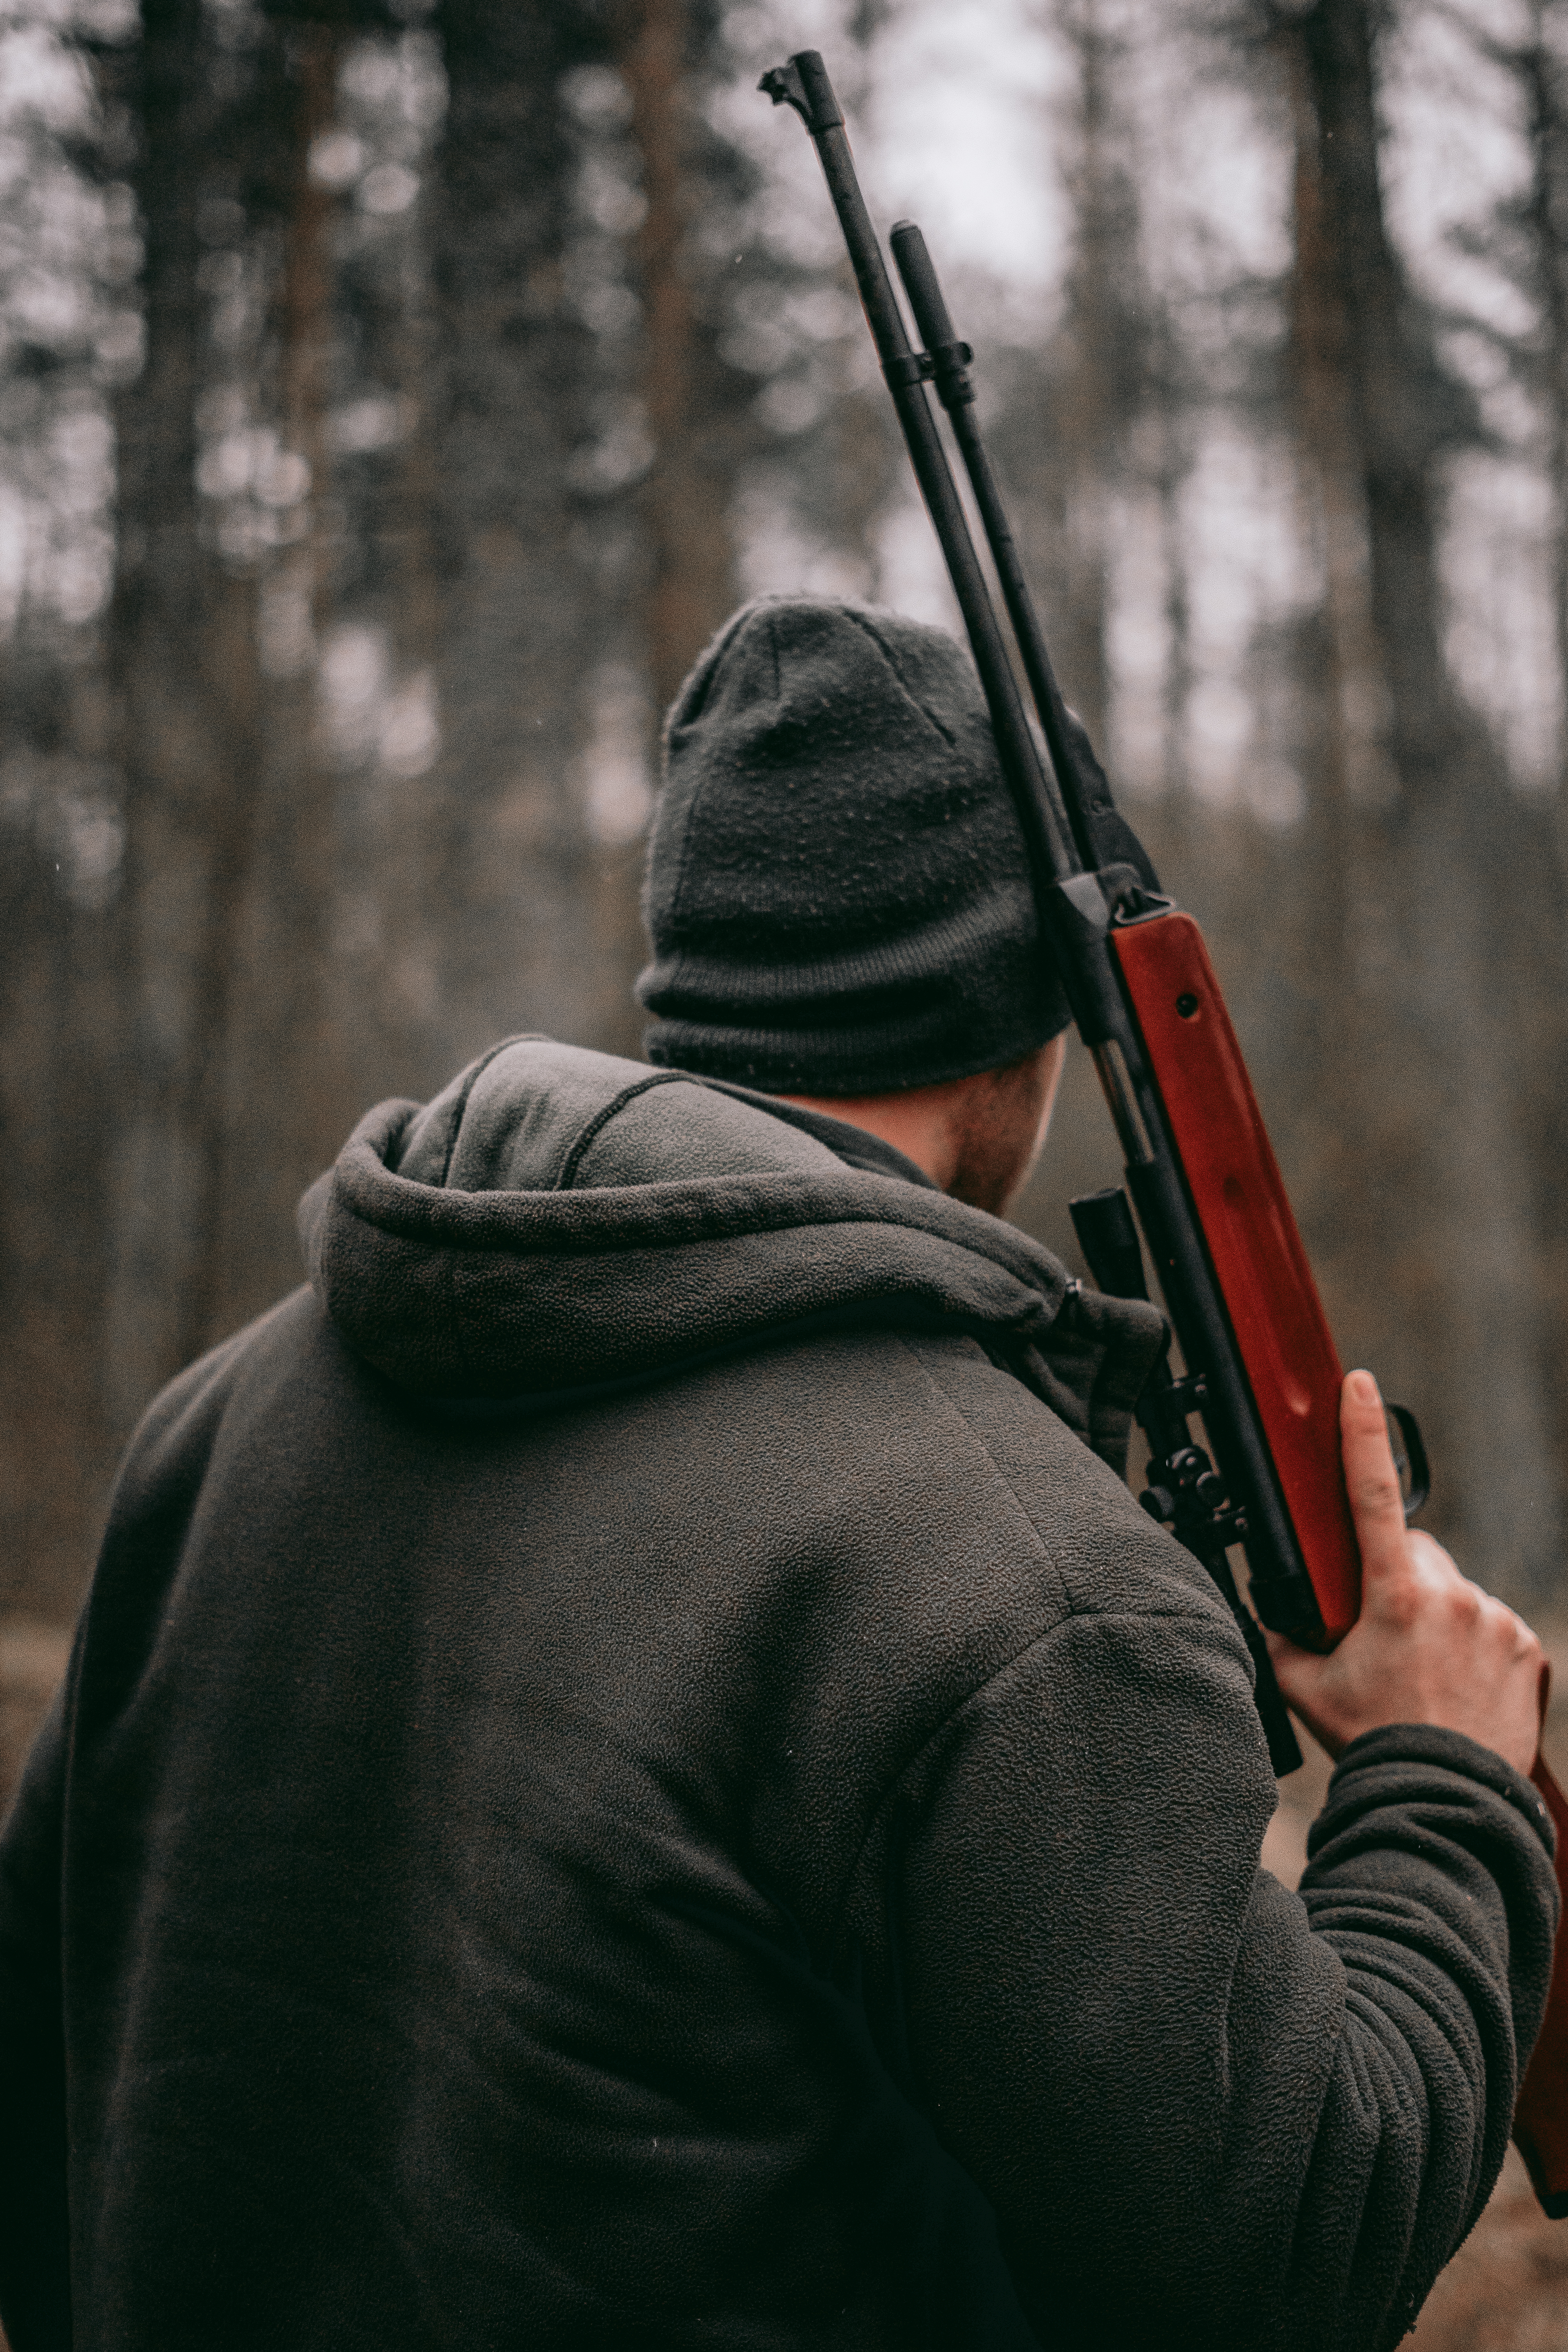 Man Holding Brown And Black Sniper Rifle In Shallow Focus P Ography